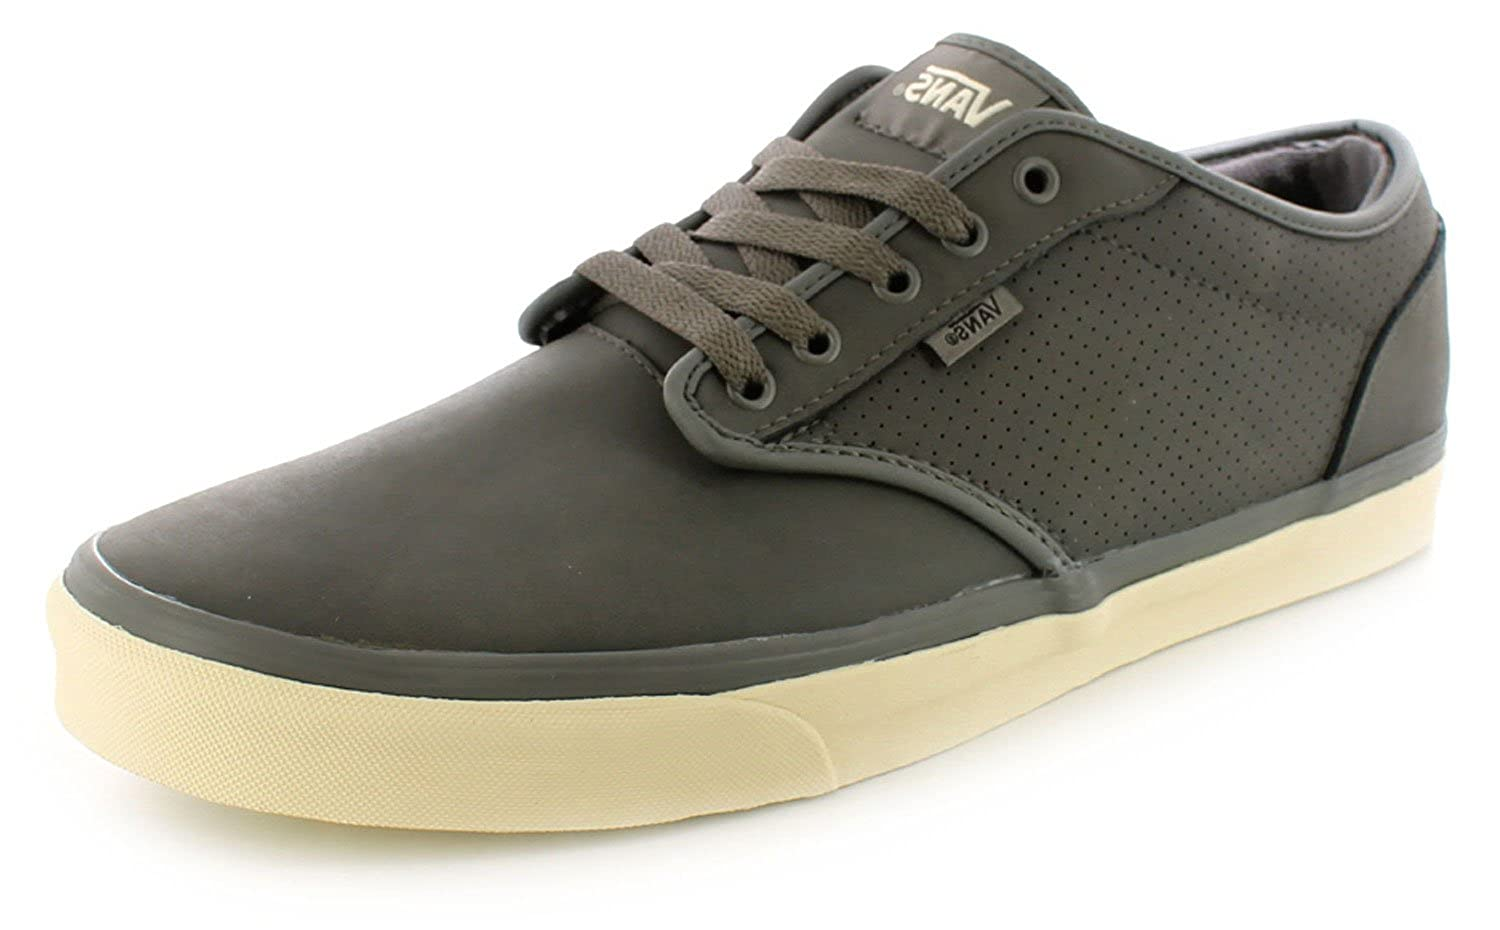 f9937fbe79 New Mens Gents Grey Vans Nubuck Leather Skate Style Trainers - Grey - UK  SIZE 15  Amazon.co.uk  Shoes   Bags